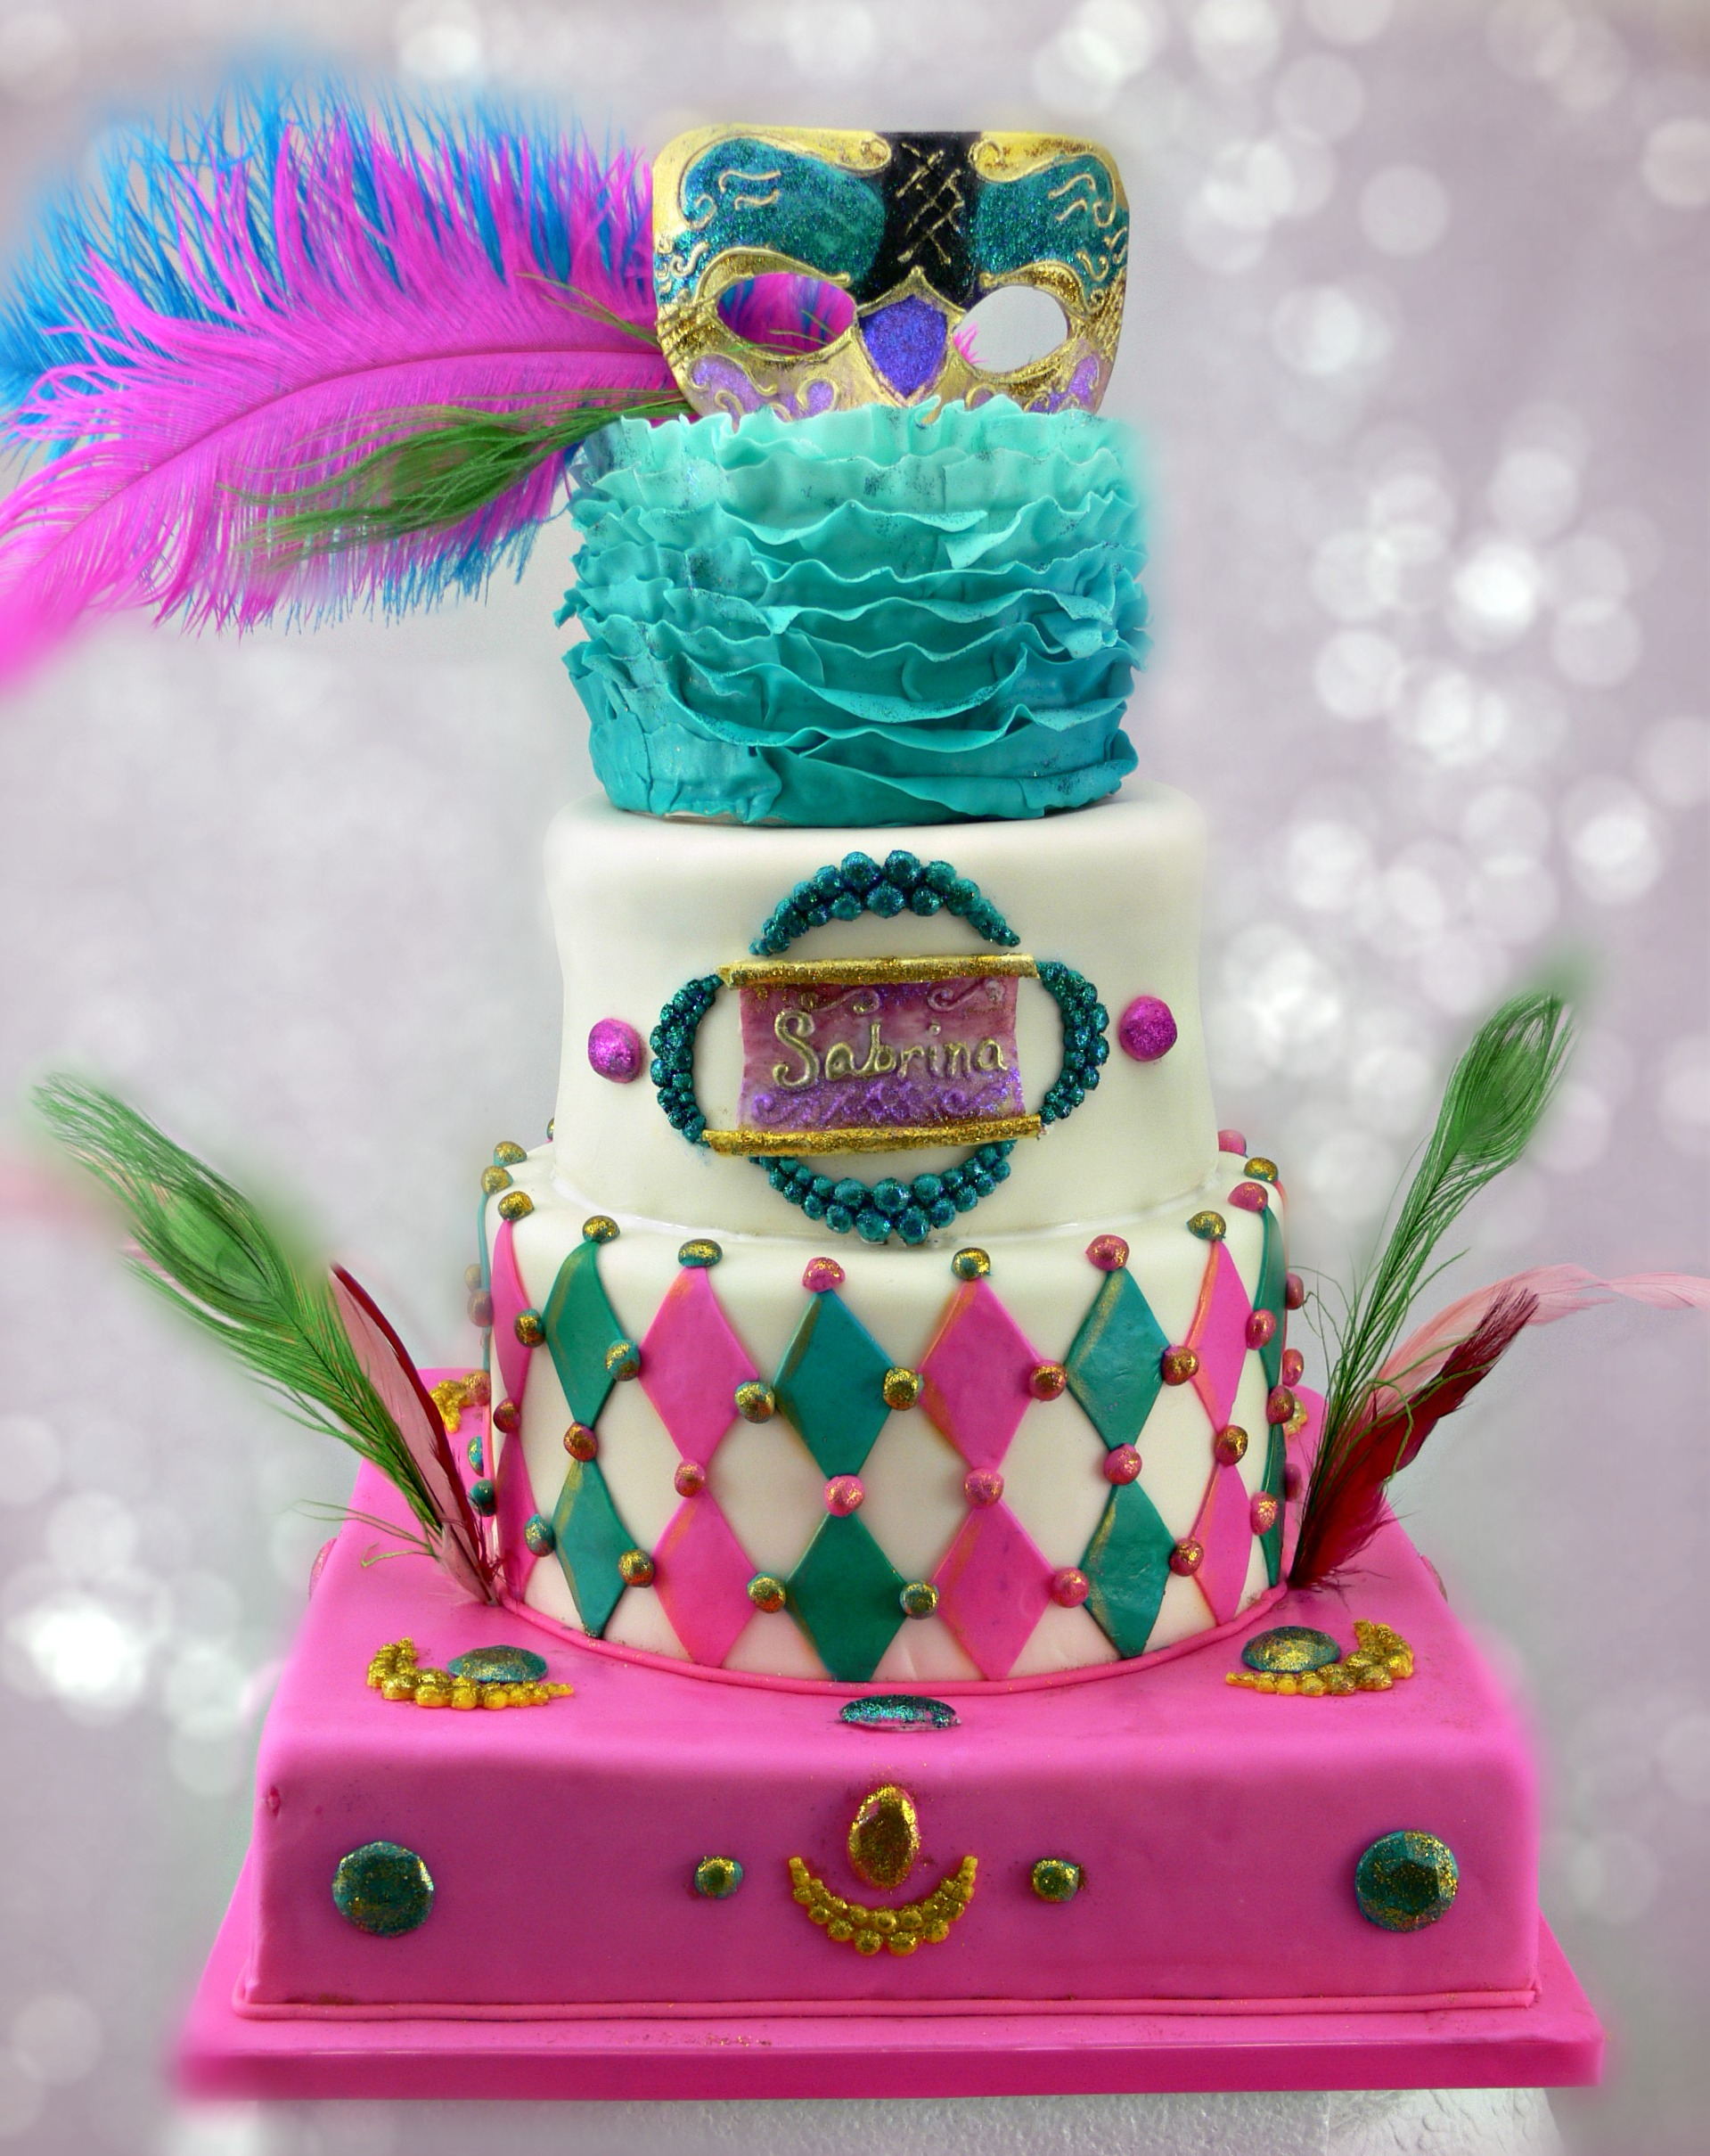 Sabrina pink and teal masquerade.jpg